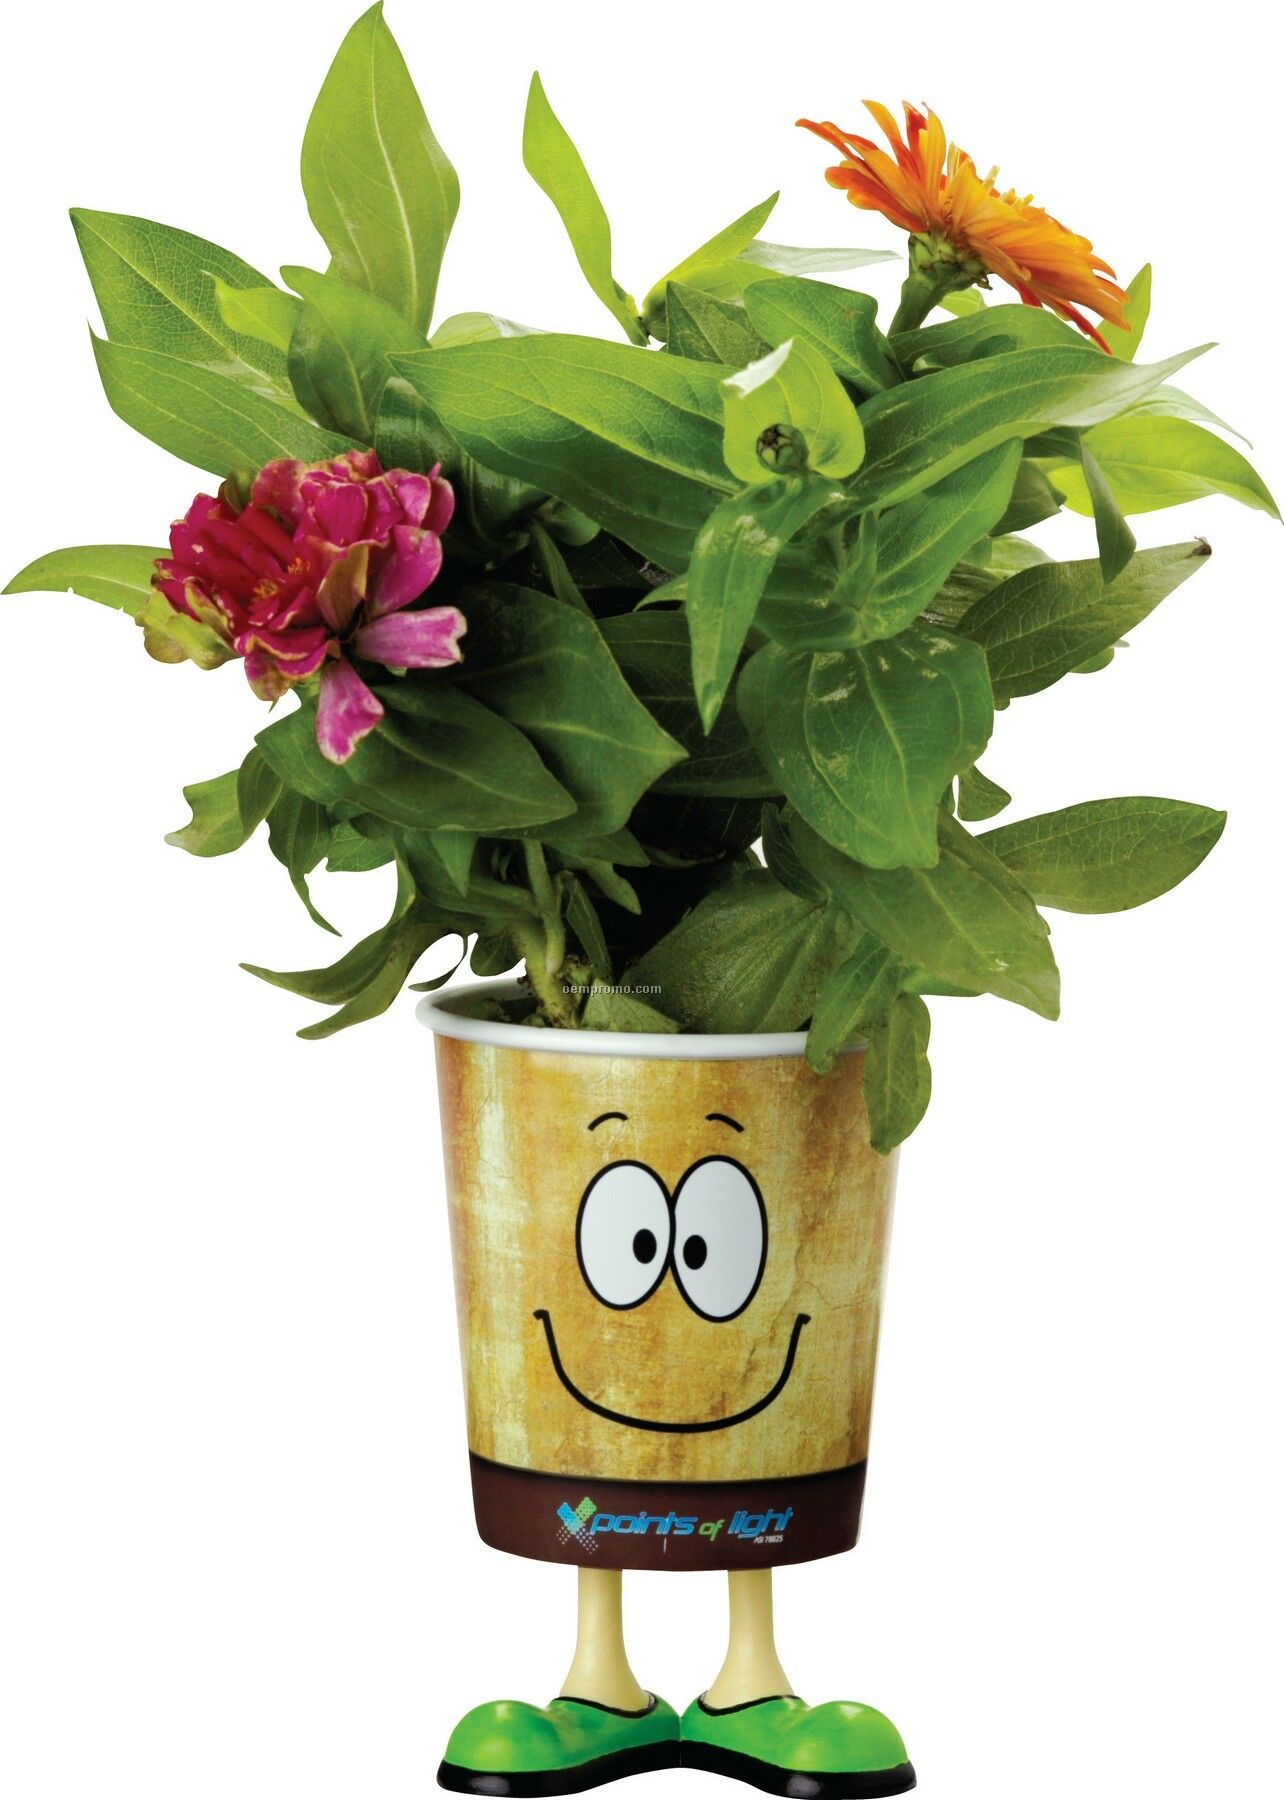 Grow Cups Eco-friendly Garden Kits - Guy